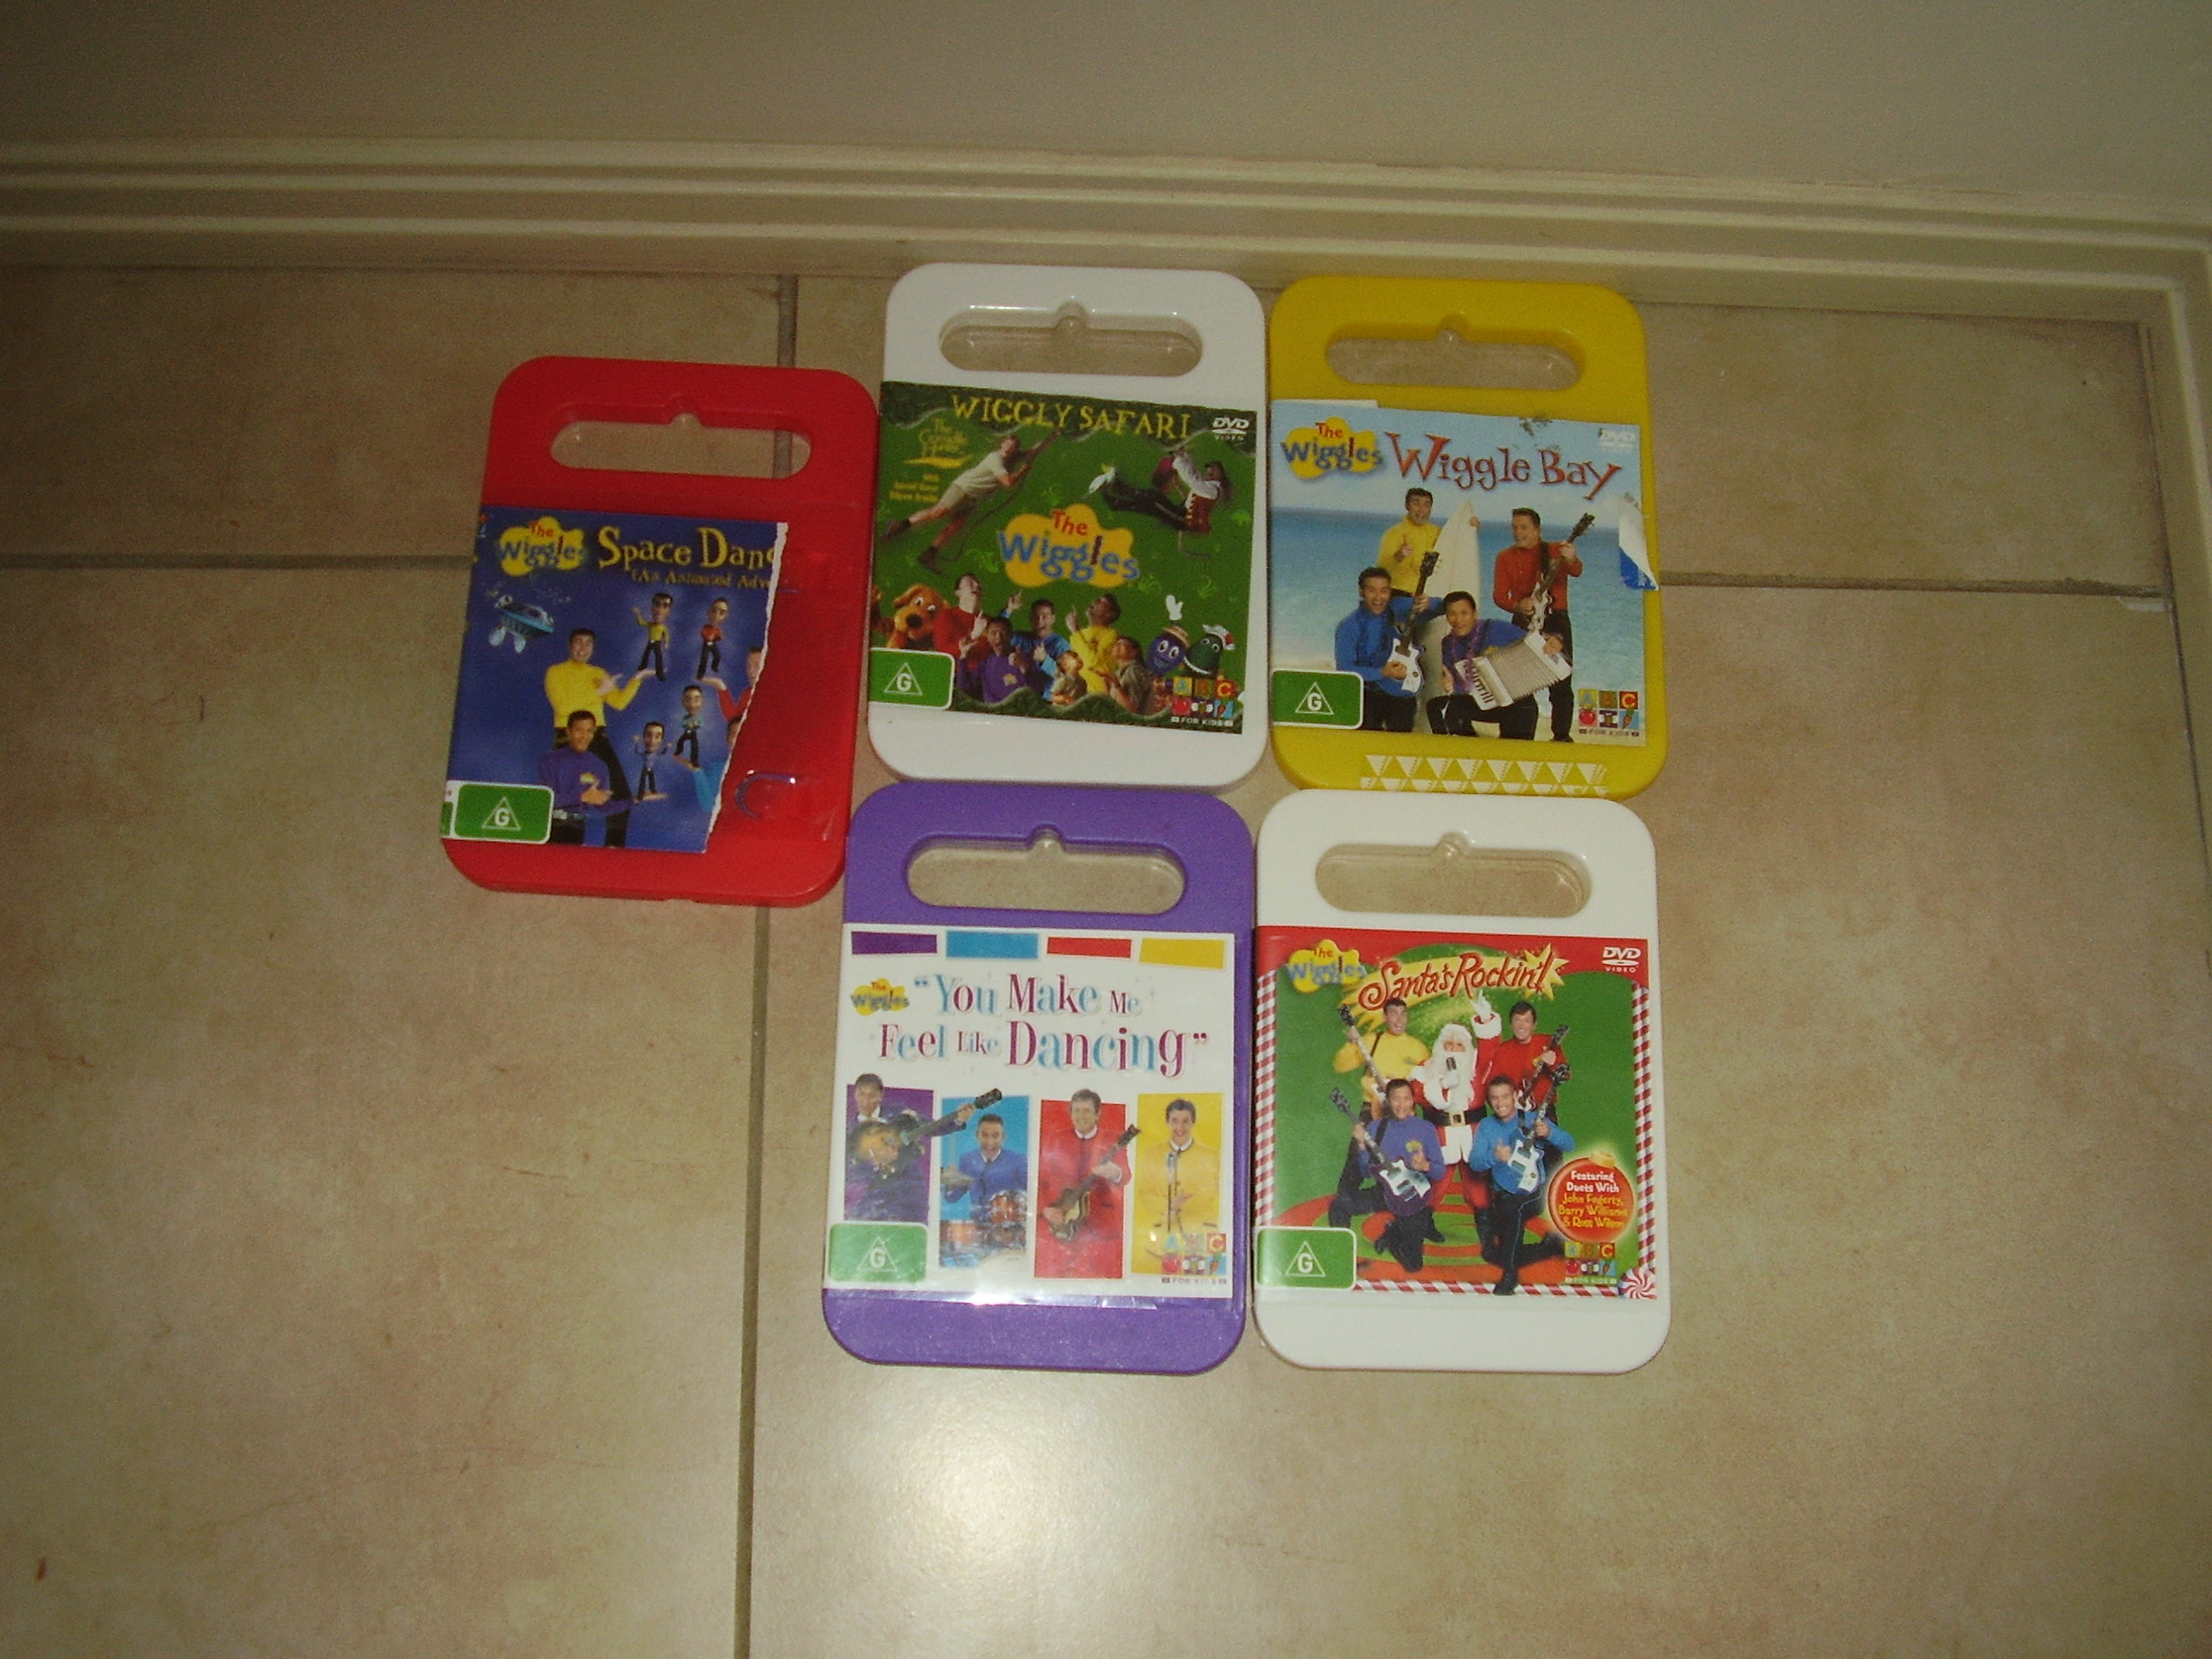 The Wiggles Dvds -BUY AND SELL-TV/DVD's